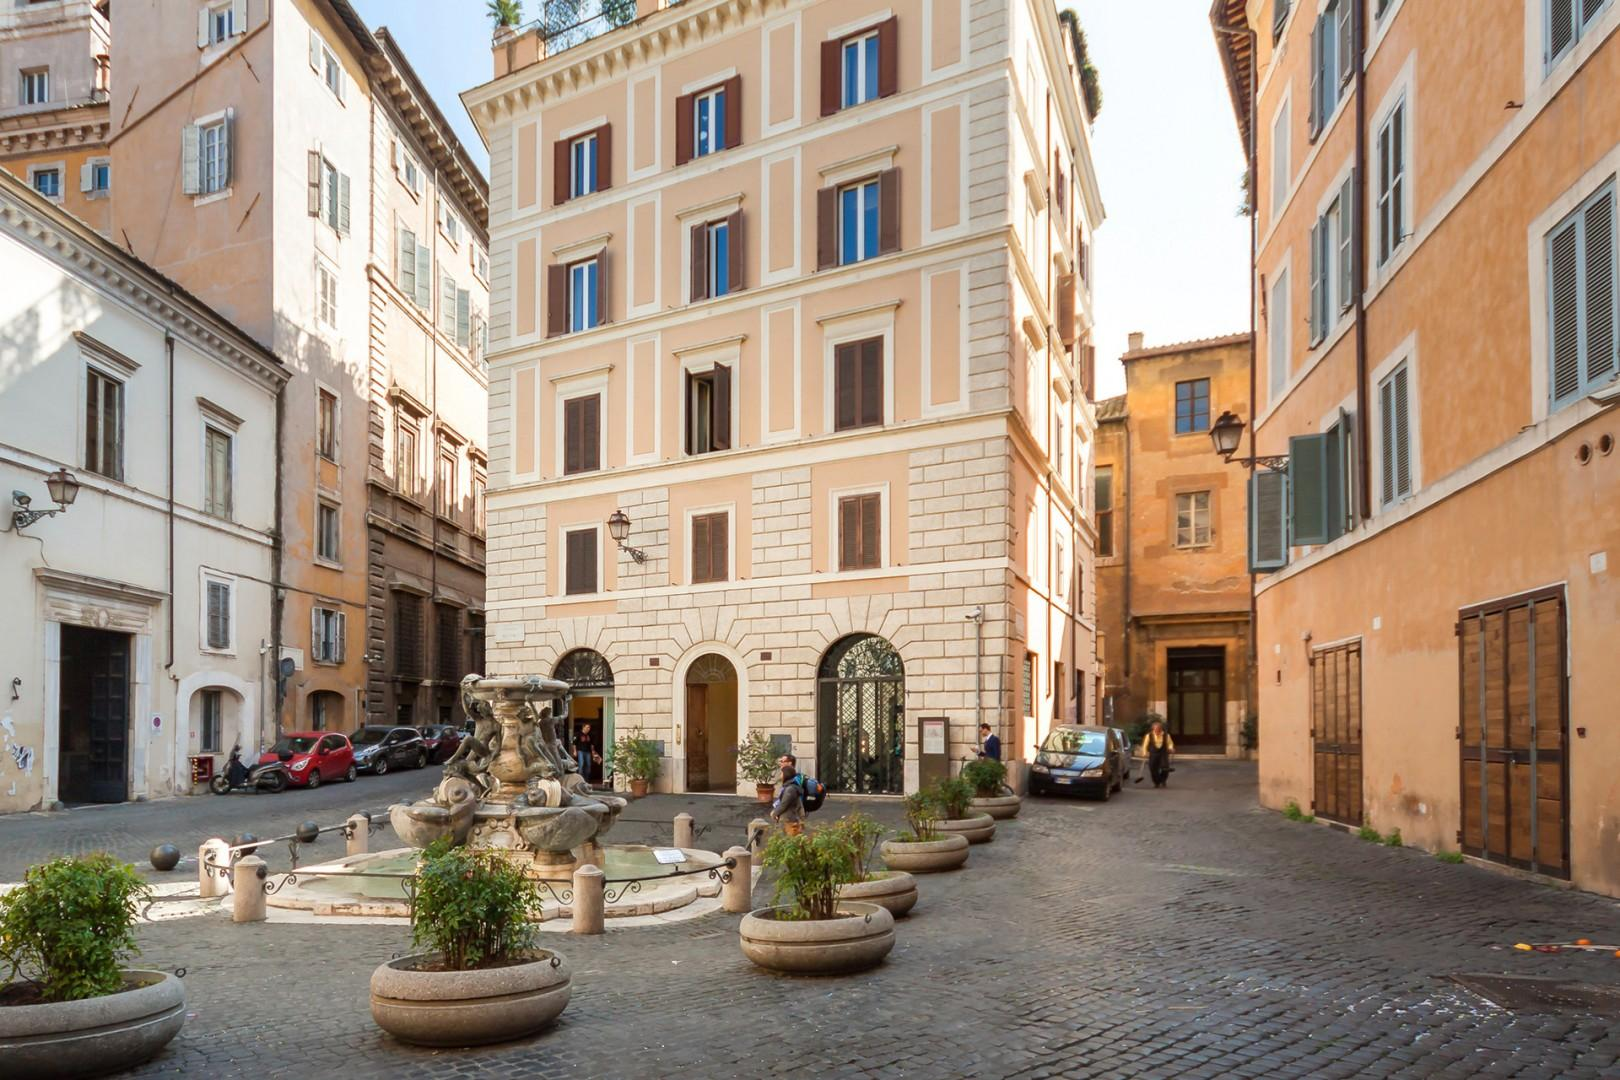 The charming piazza in front of the palazzo with the famous Turtle Fountain.